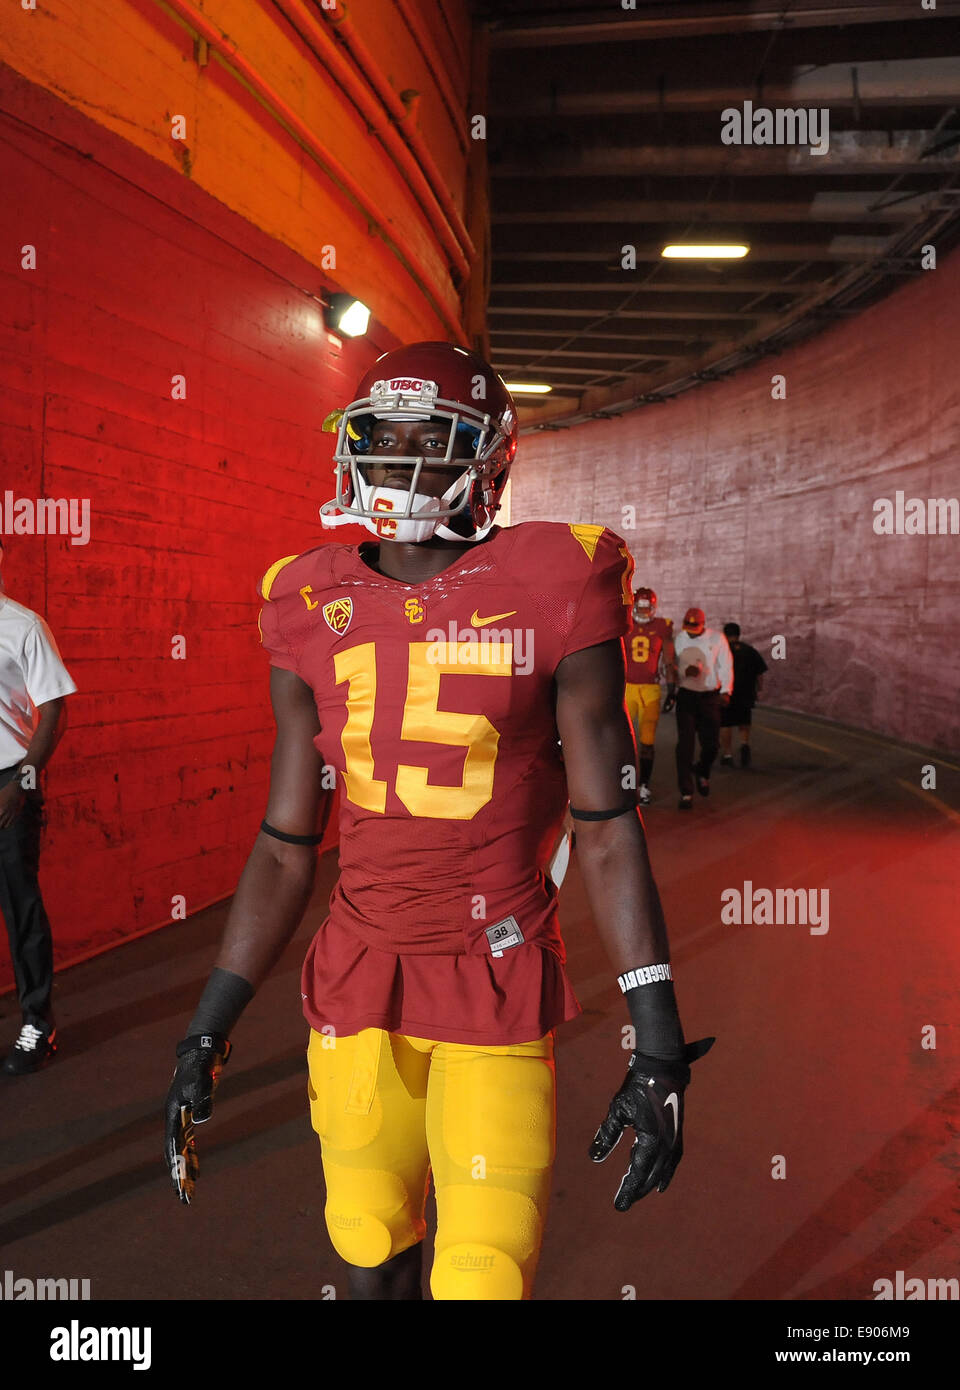 bd94c9f6e60 Nelson Agholor Stock Photos & Nelson Agholor Stock Images - Alamy